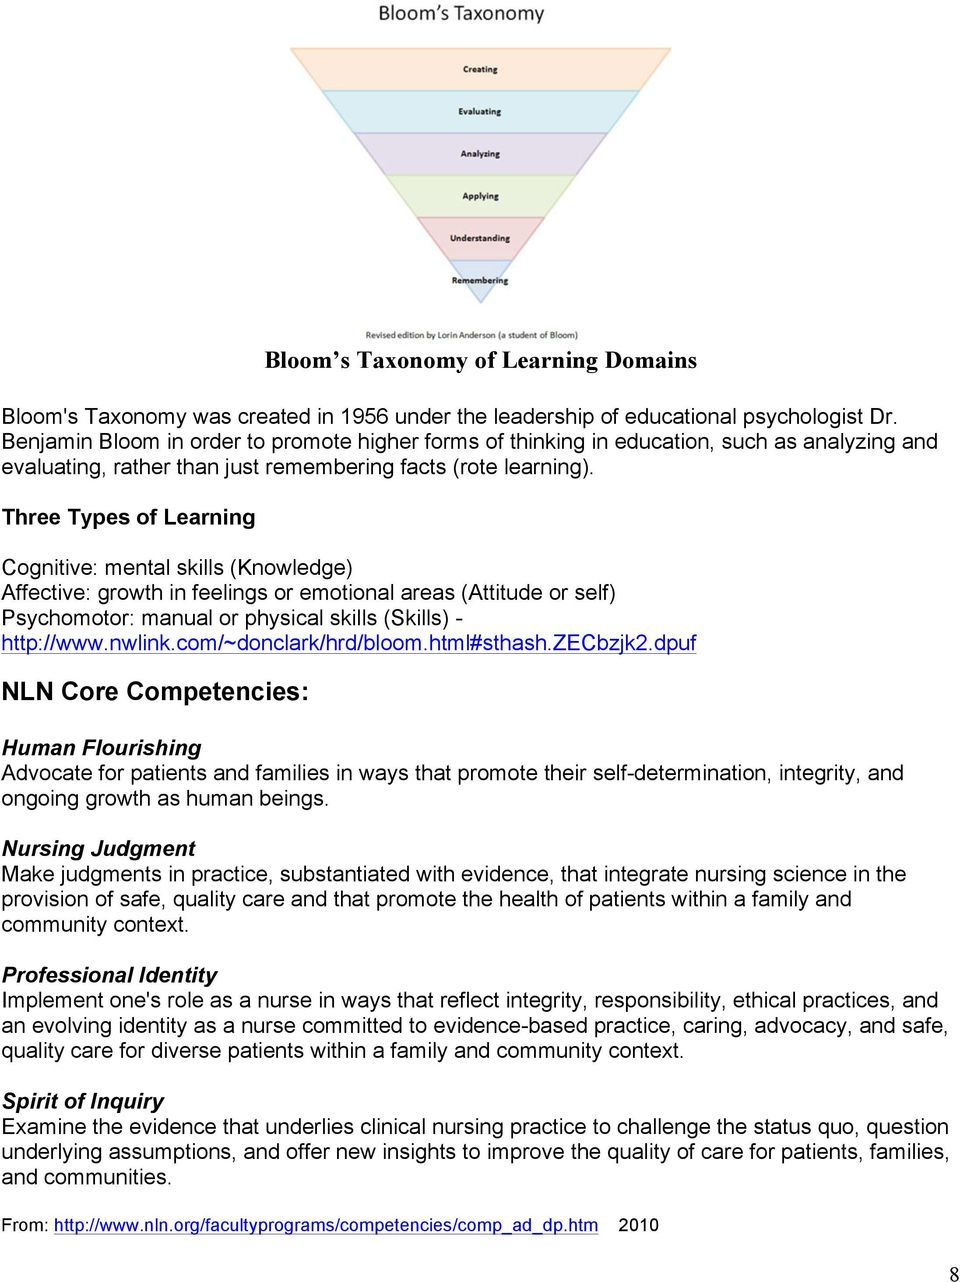 Three Types of Learning Cognitive: mental skills (Knowledge) Affective: growth in feelings or emotional areas (Attitude or self) Psychomotor: manual or physical skills (Skills) - http://www.nwlink.